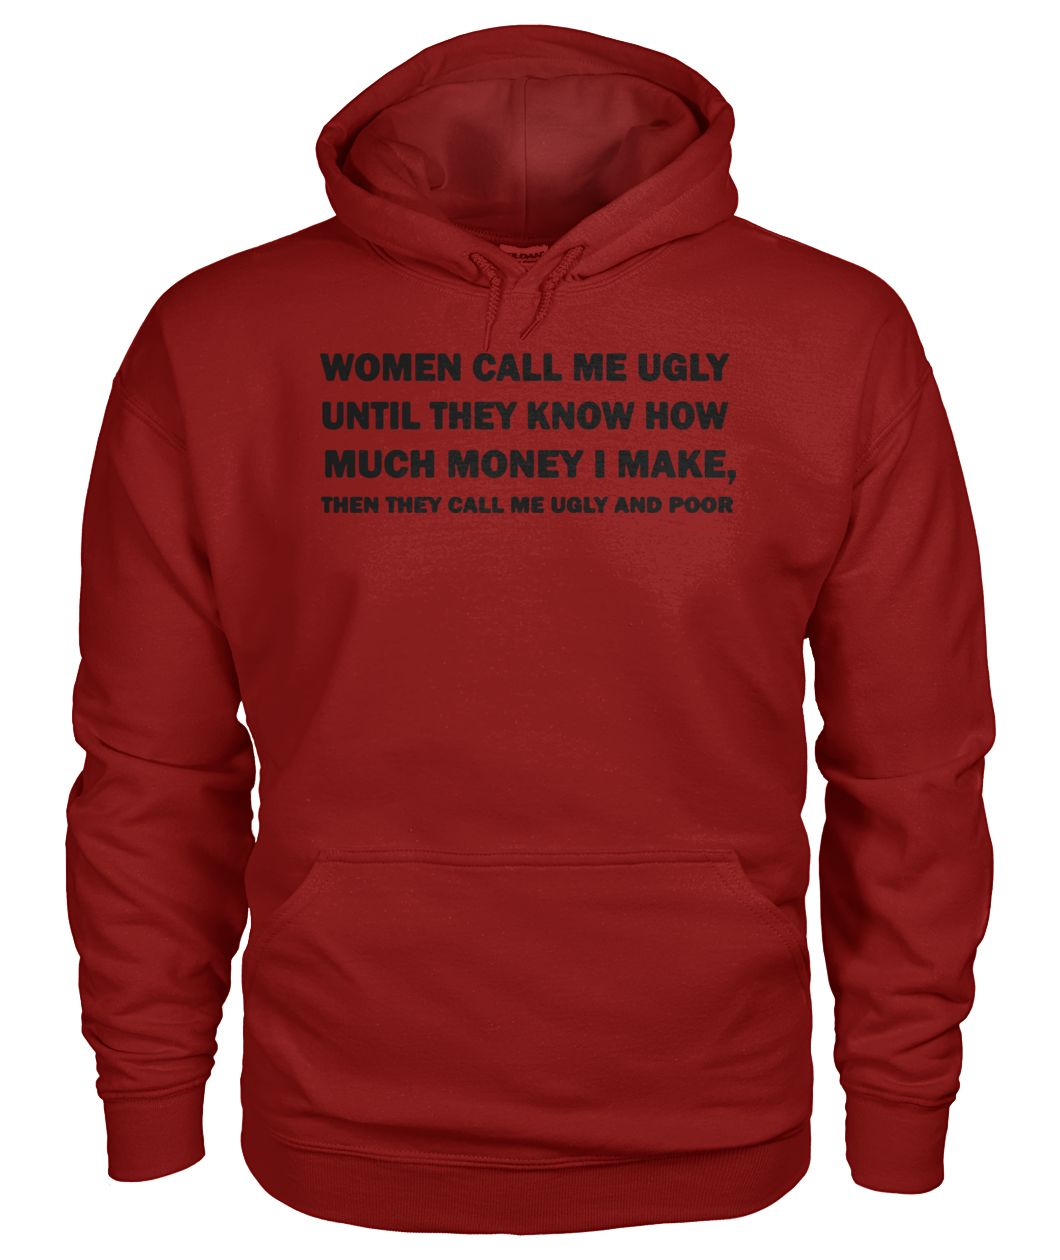 Then they call me ugly and poor gildan hoodie